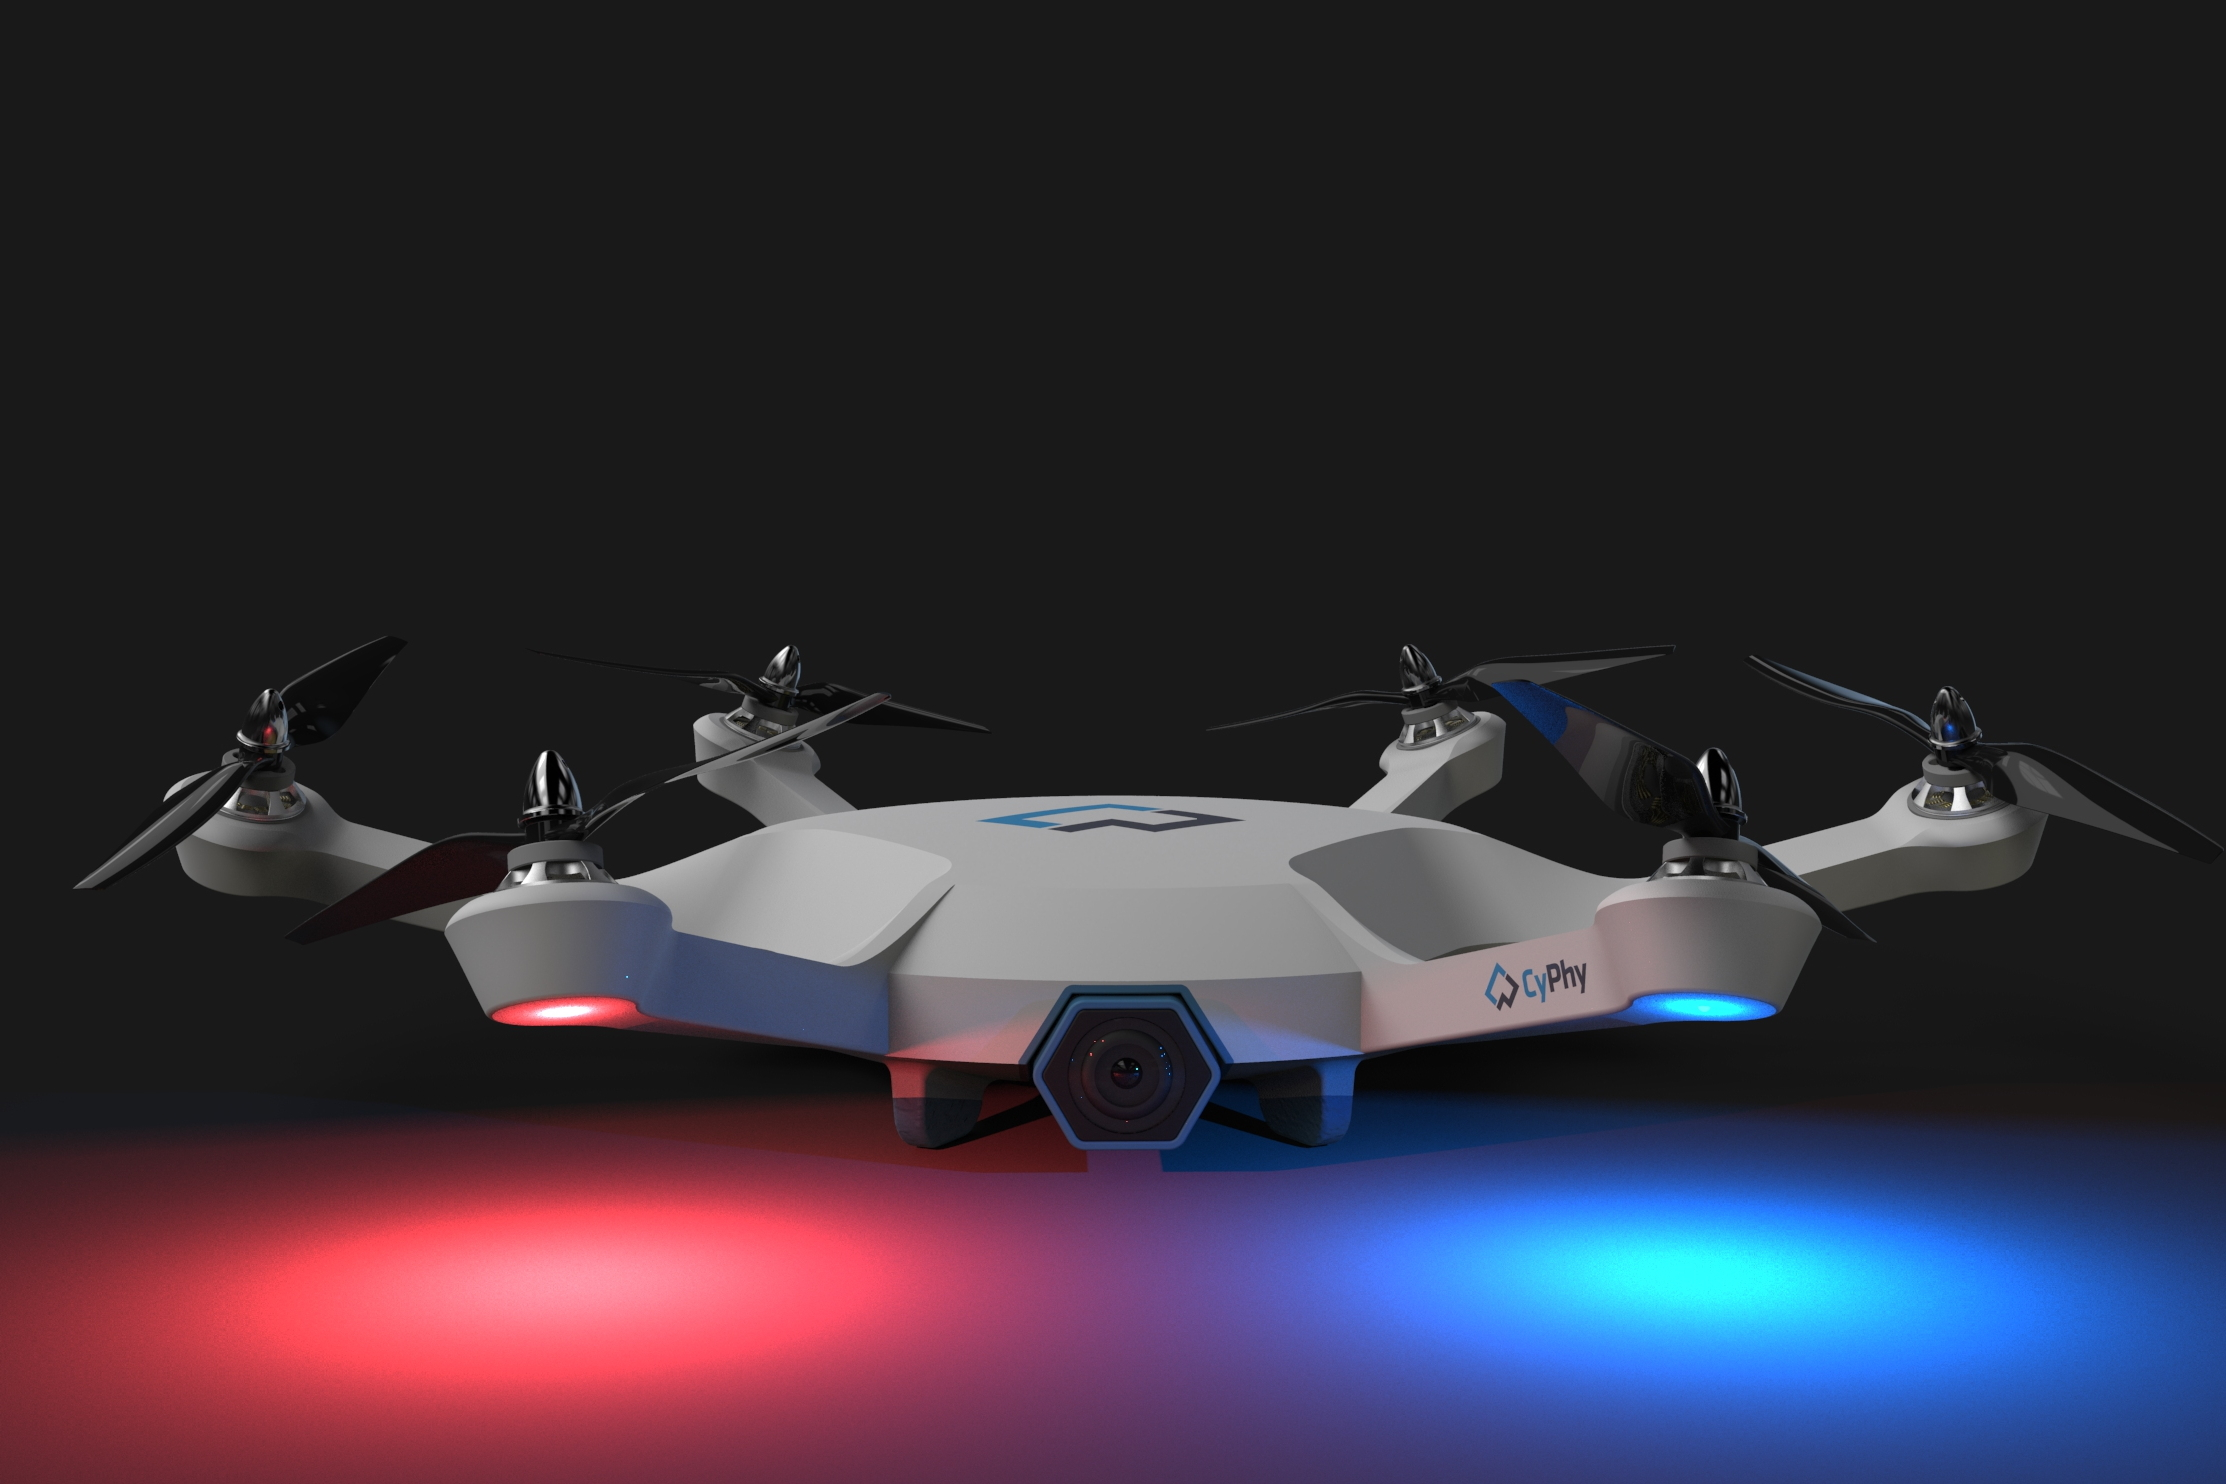 The LVL 1 drone by CyPhy Works